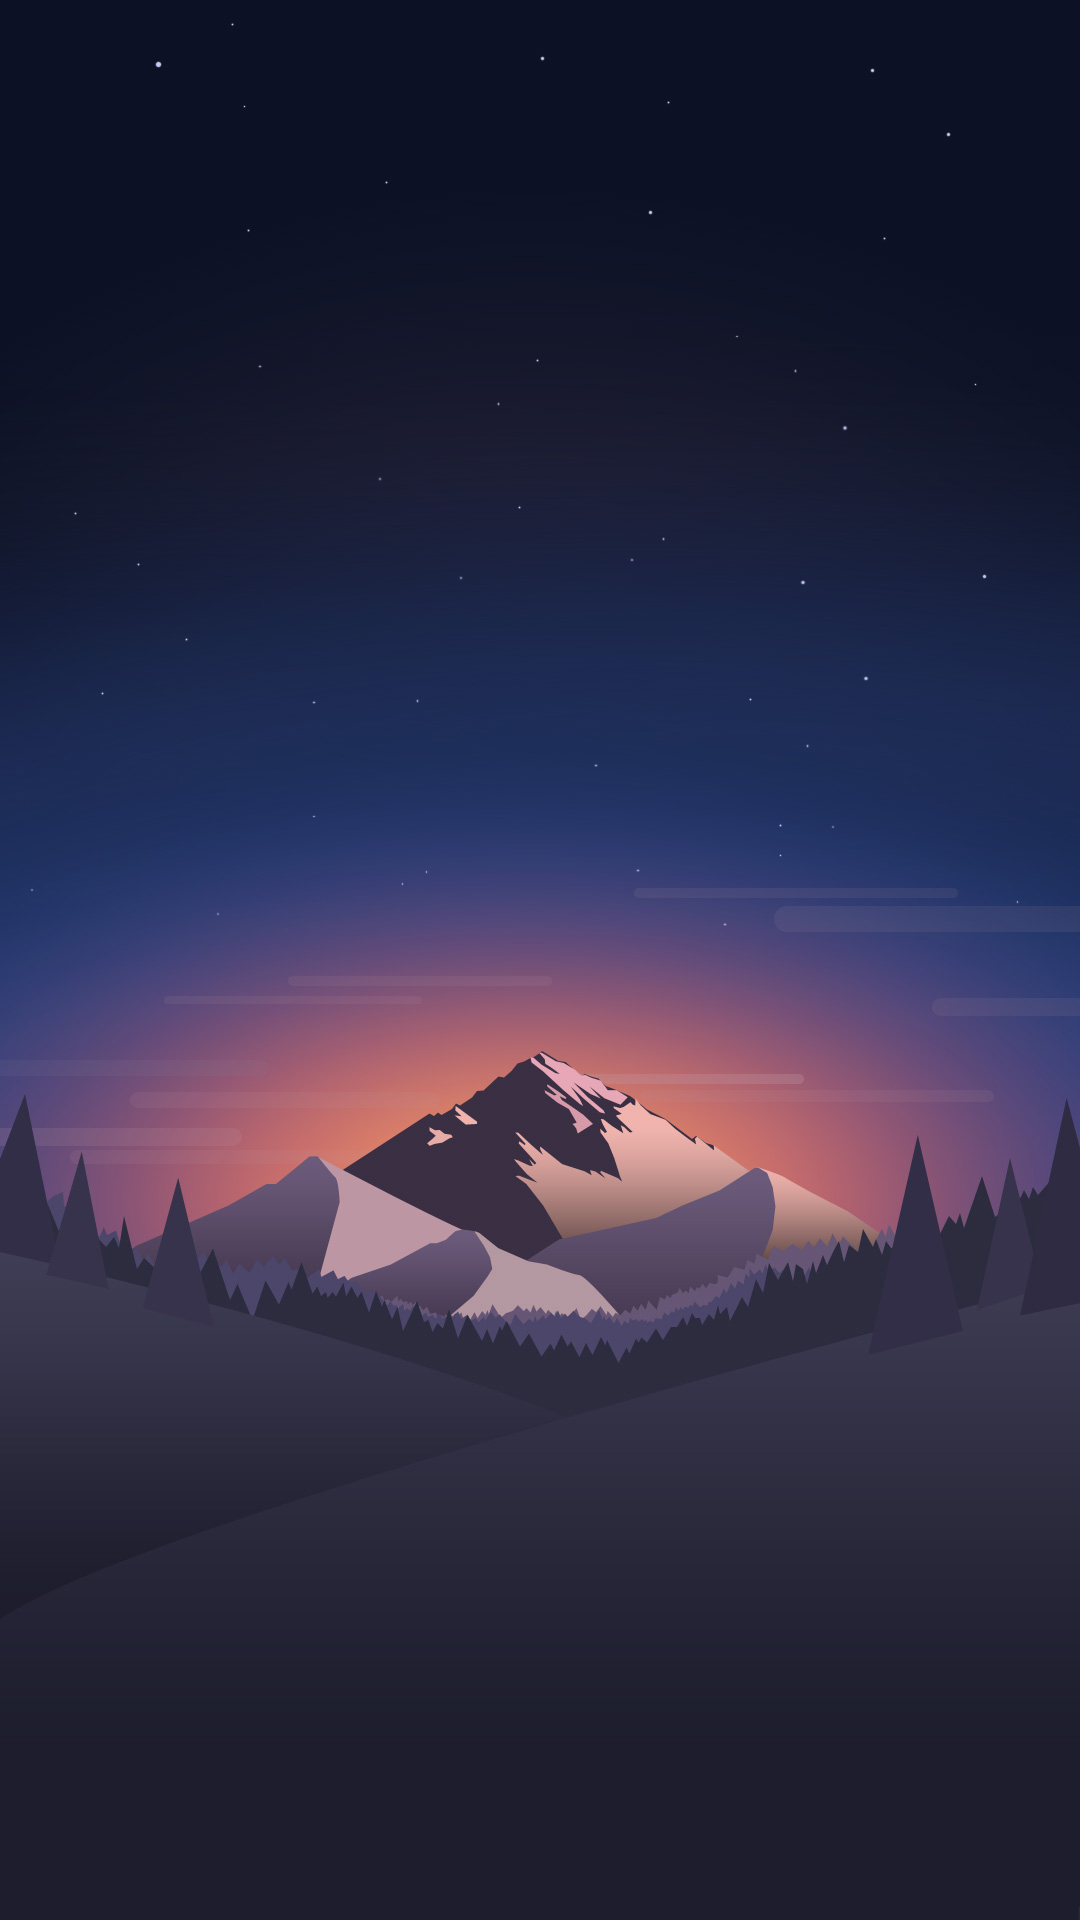 Low Poly Wallpapers (Desk & Phone) Landscape wallpaper